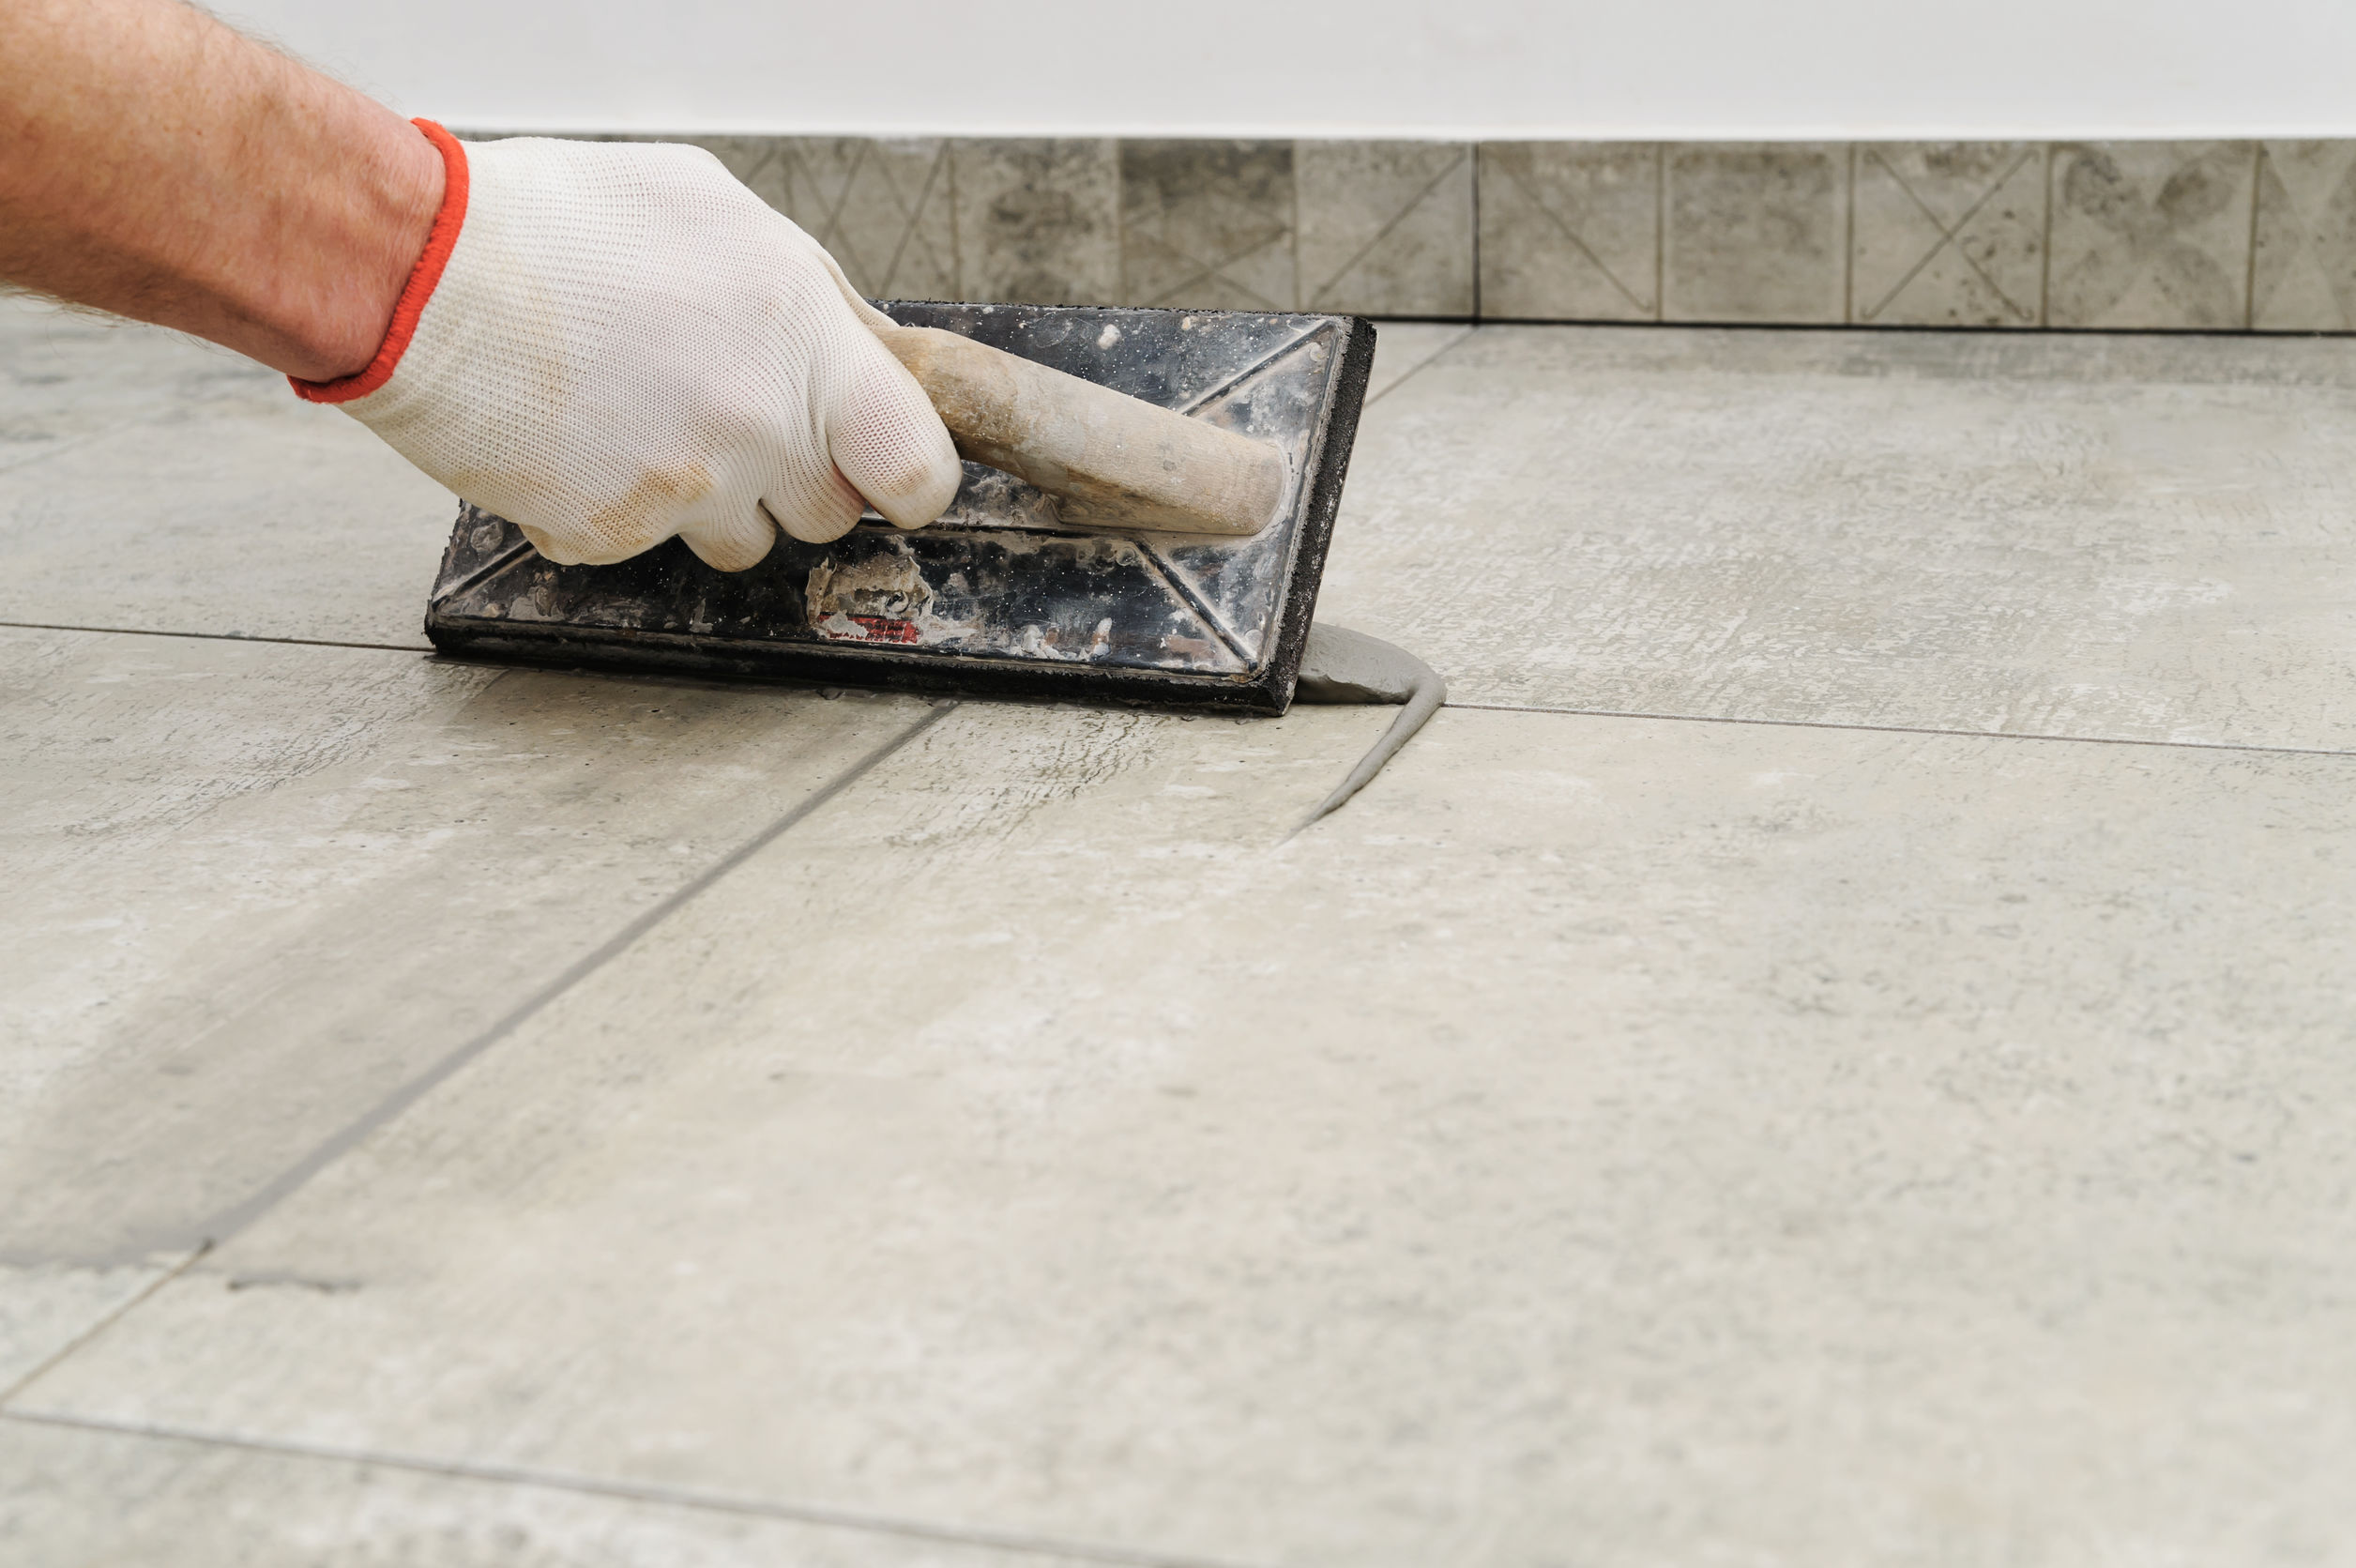 Grouting ceramic tiles.